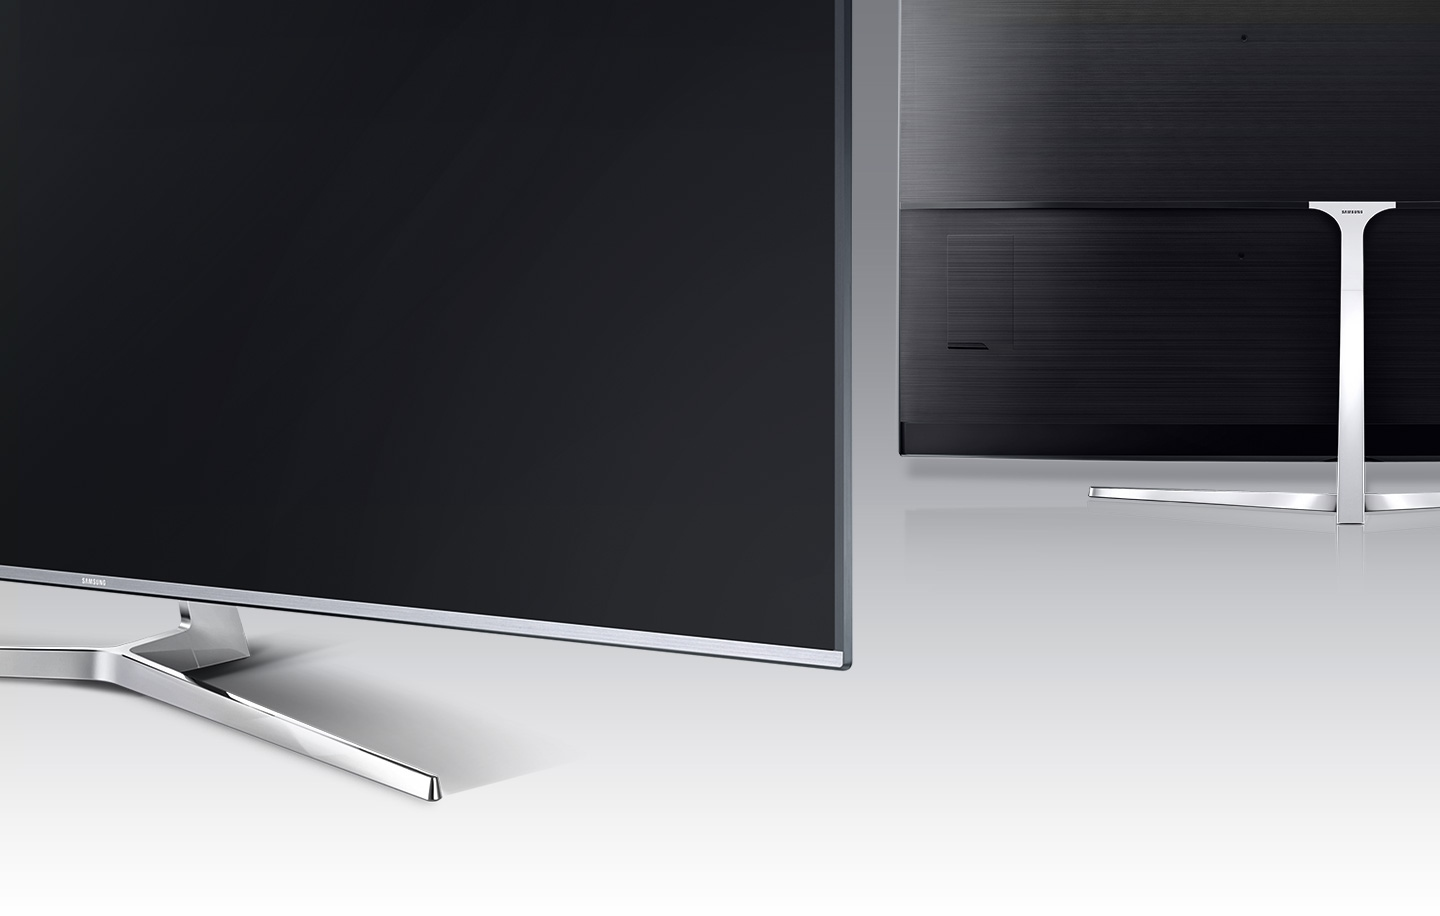 samsung smart tv back. a back angle image of samsung suhd tv\u0027s t-stand. smart tv